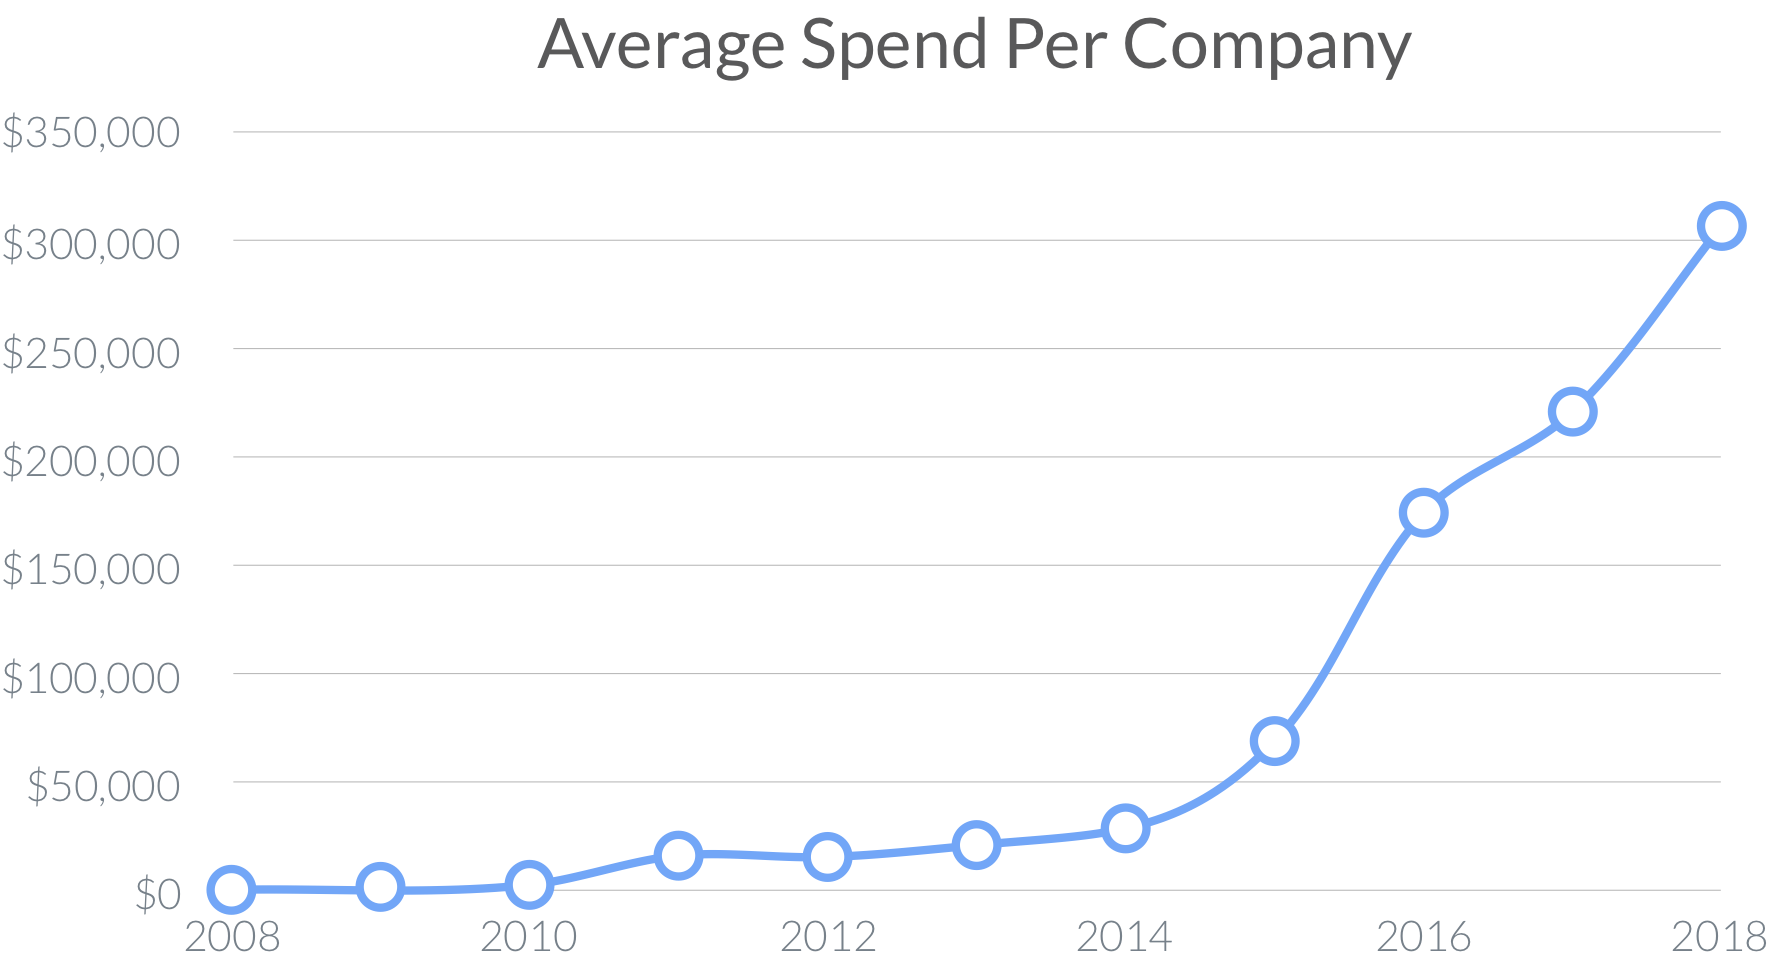 SaaS Average Spend Per Company